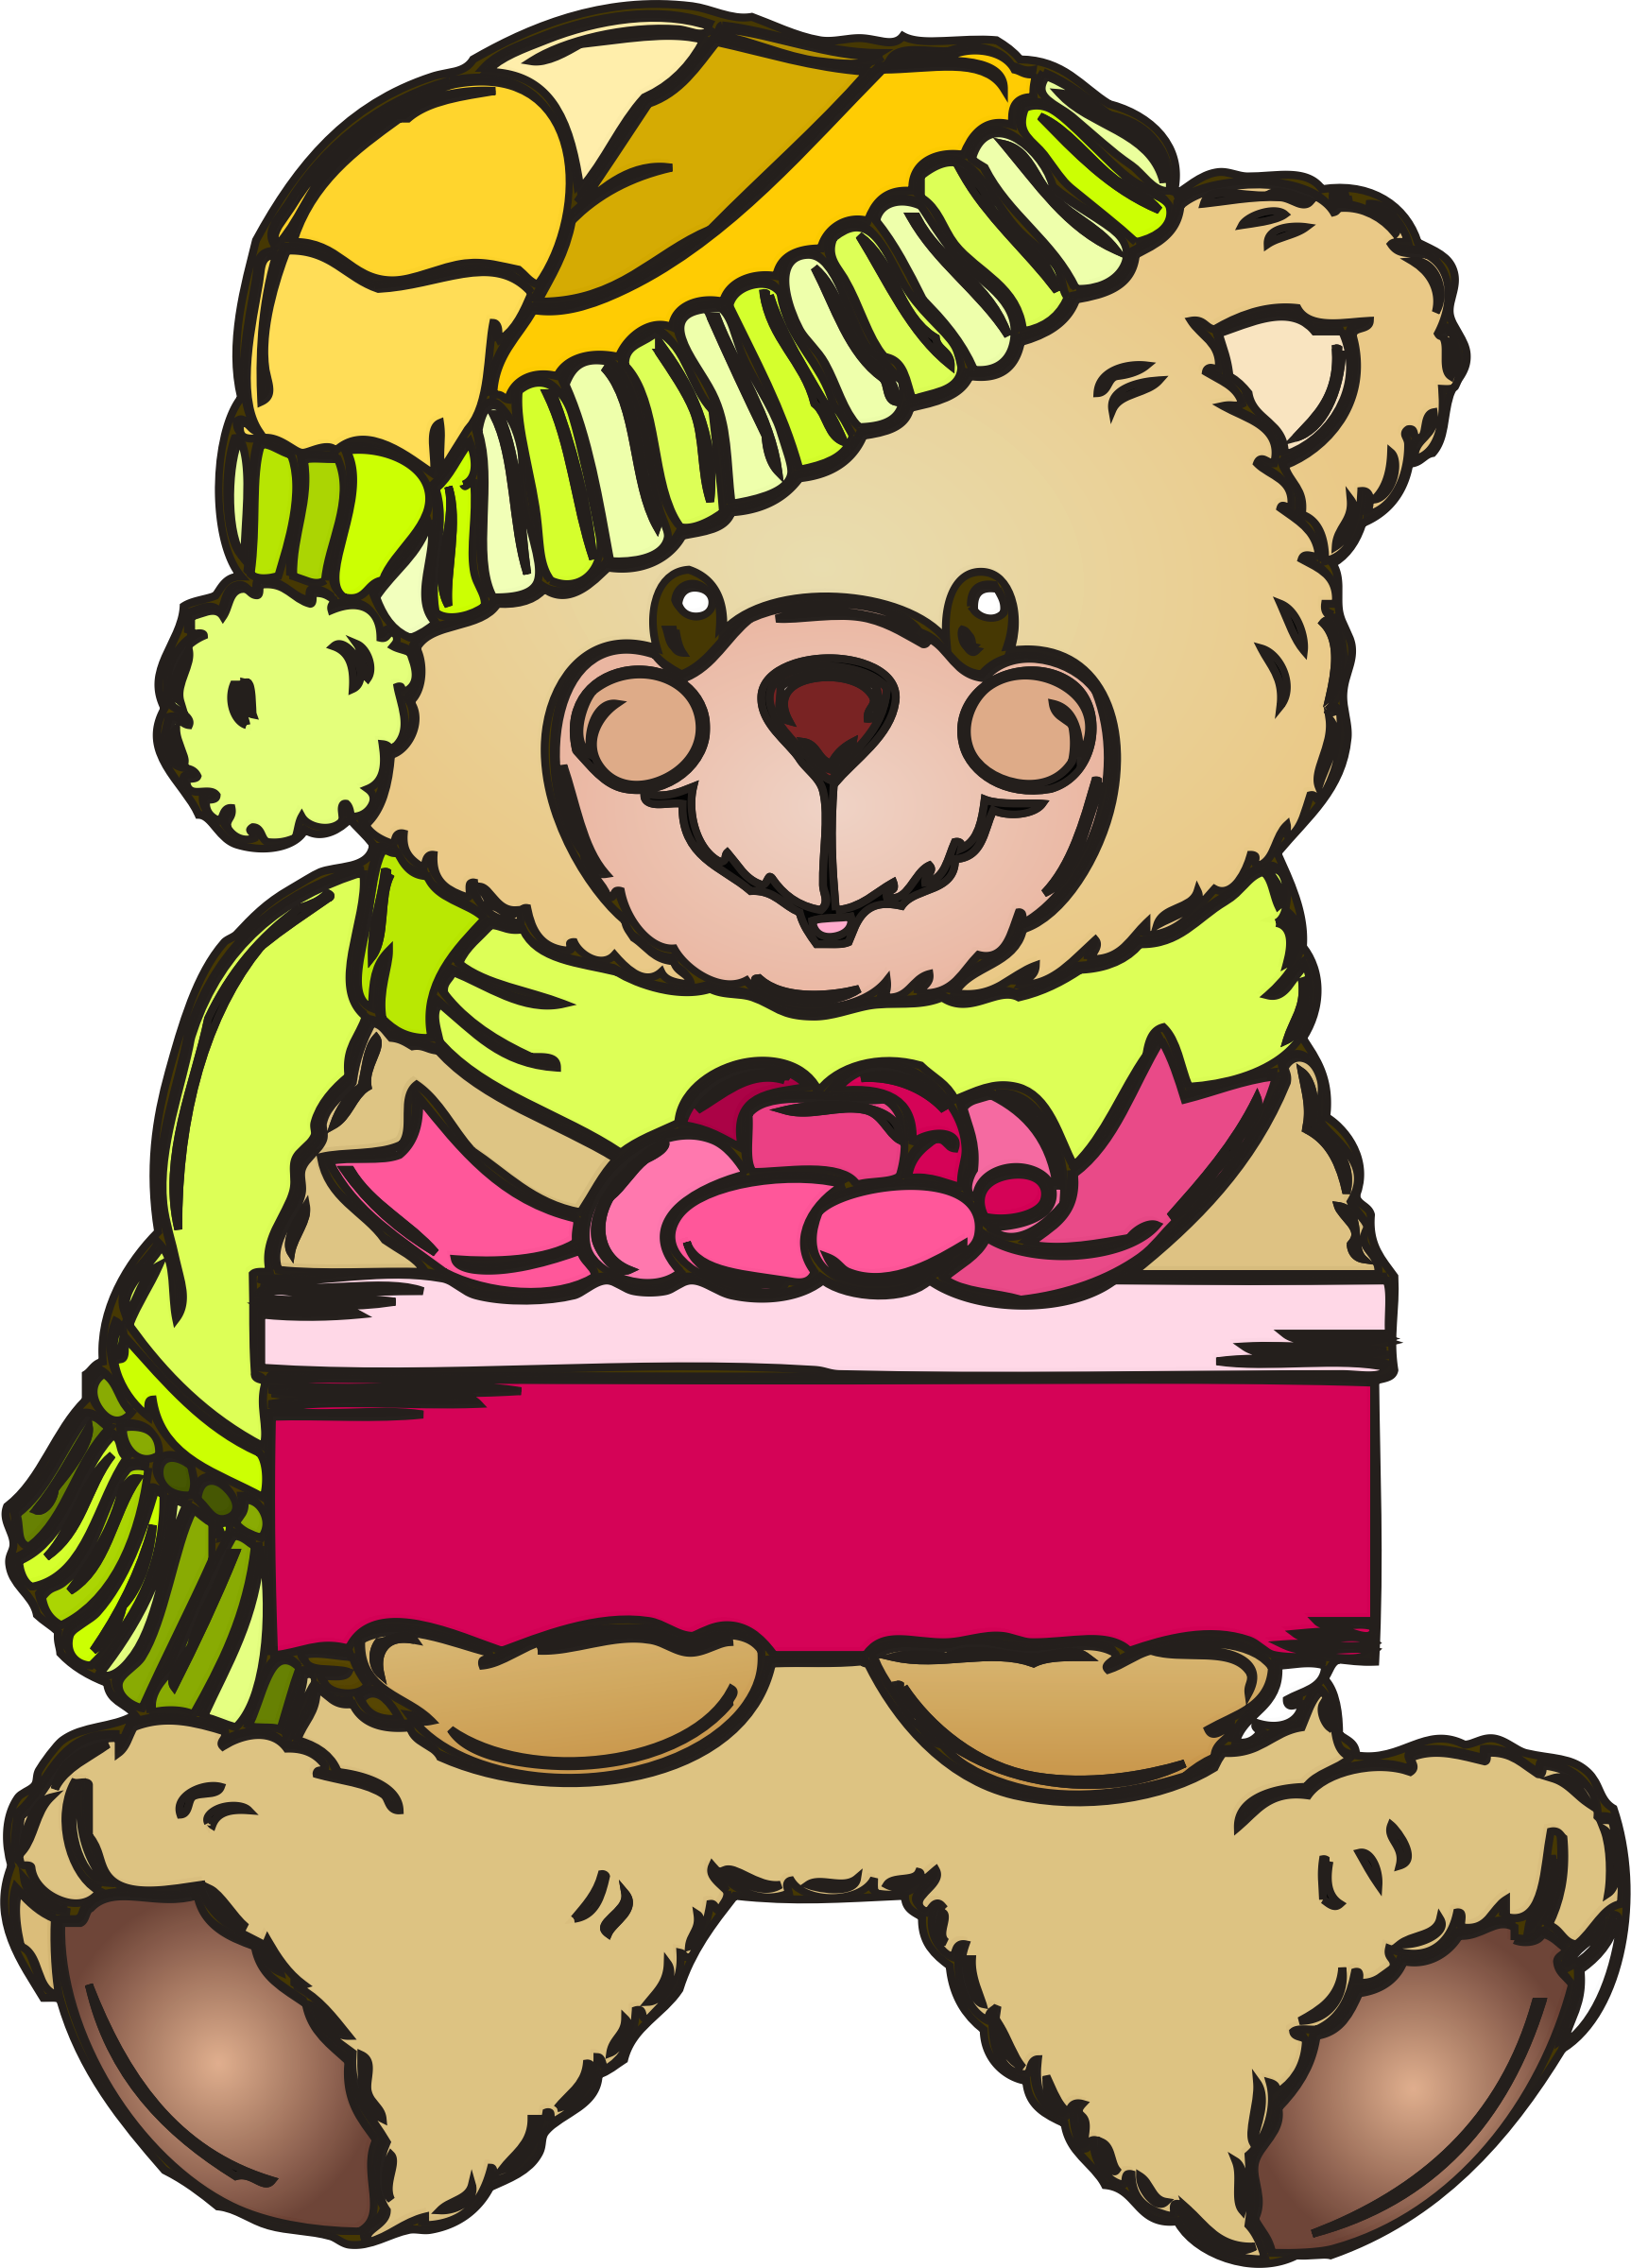 holiday bear by OlKu